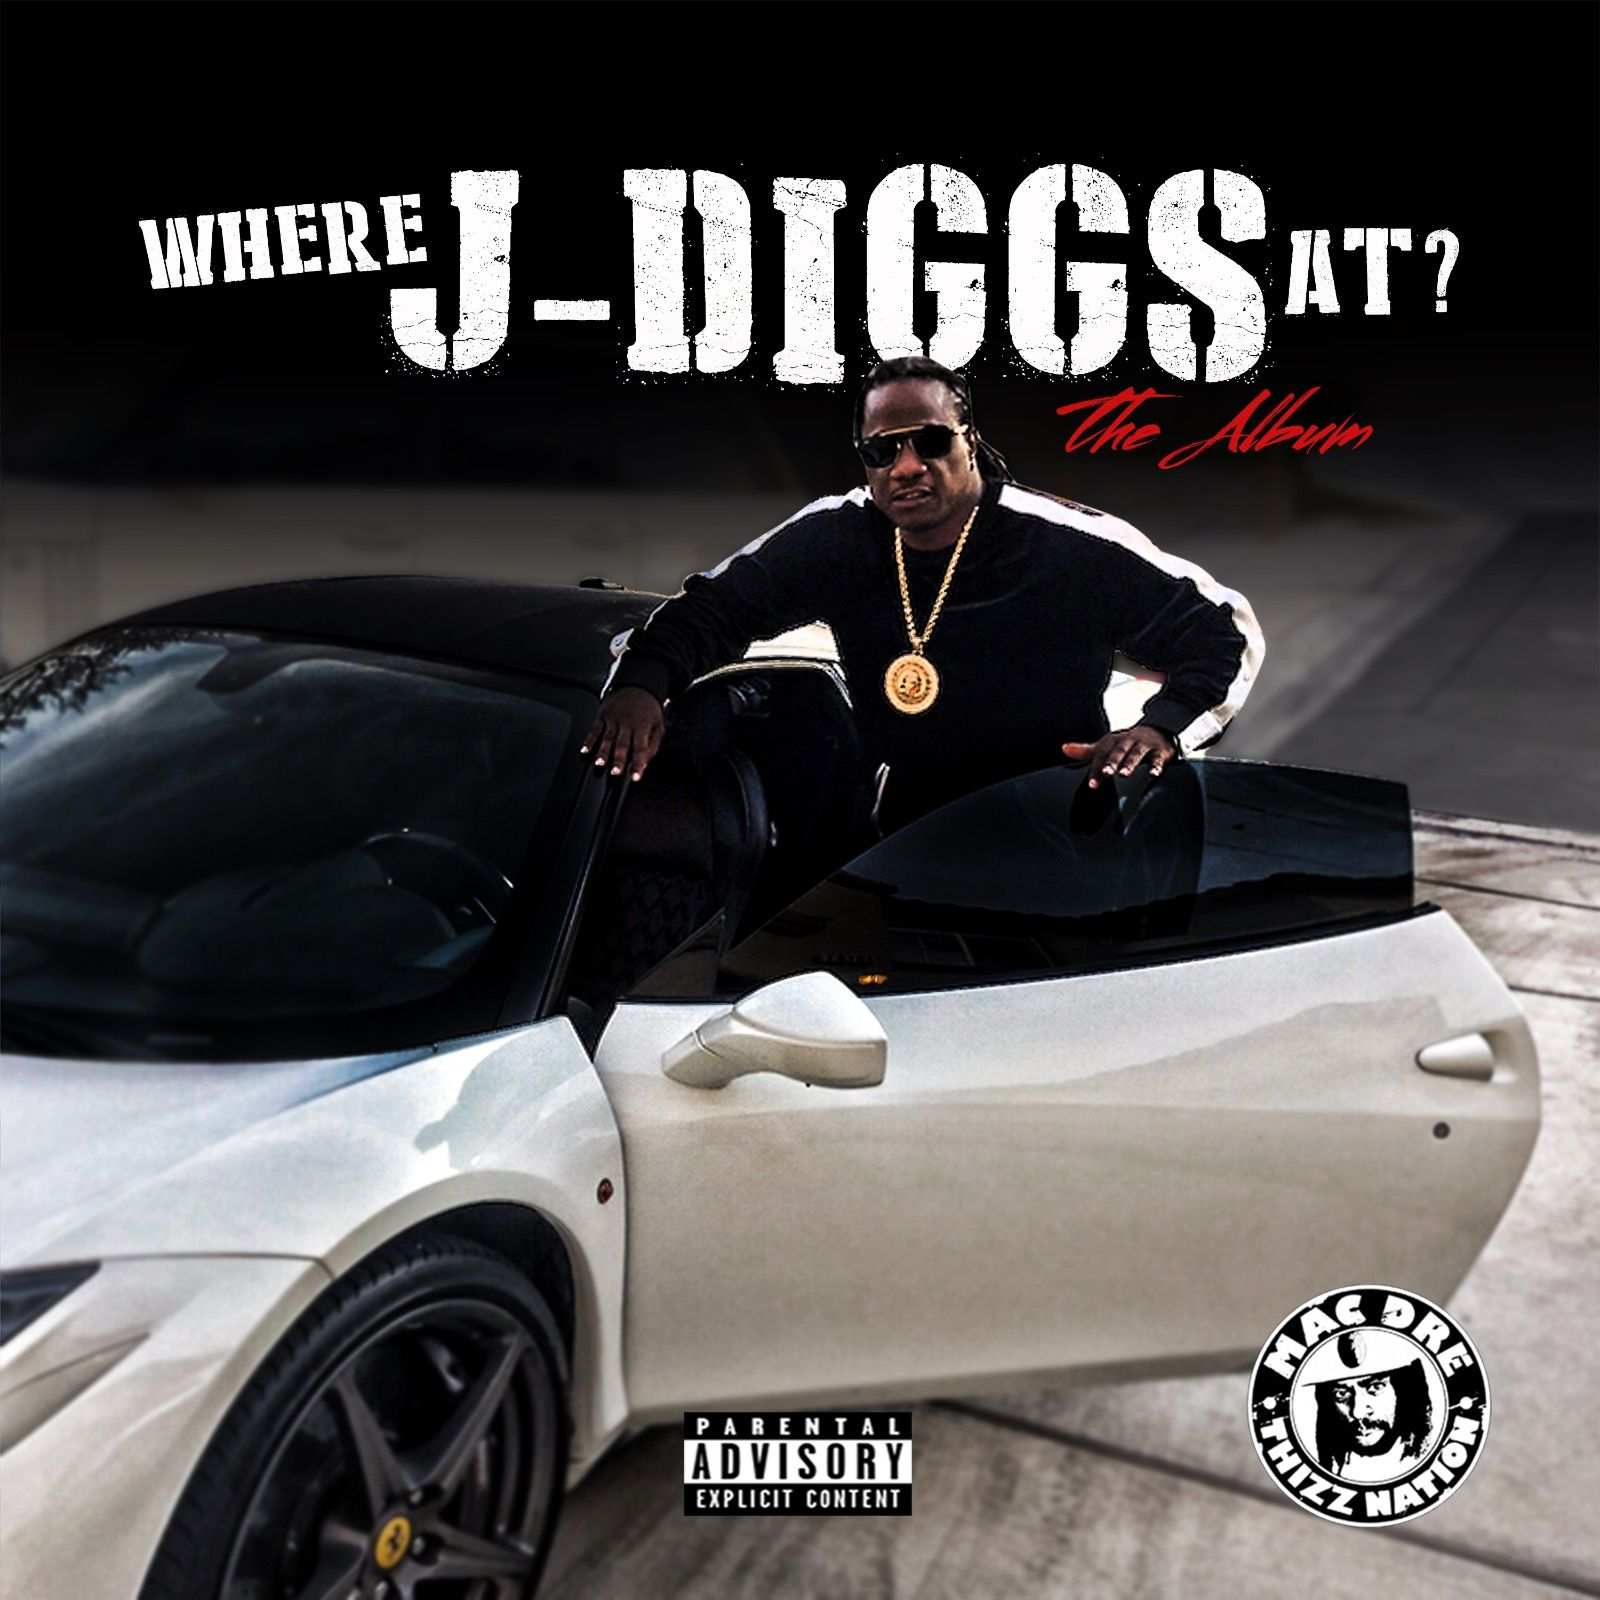 It's Funky by J-Diggs from Urbanlife Distribution / Rapbay com